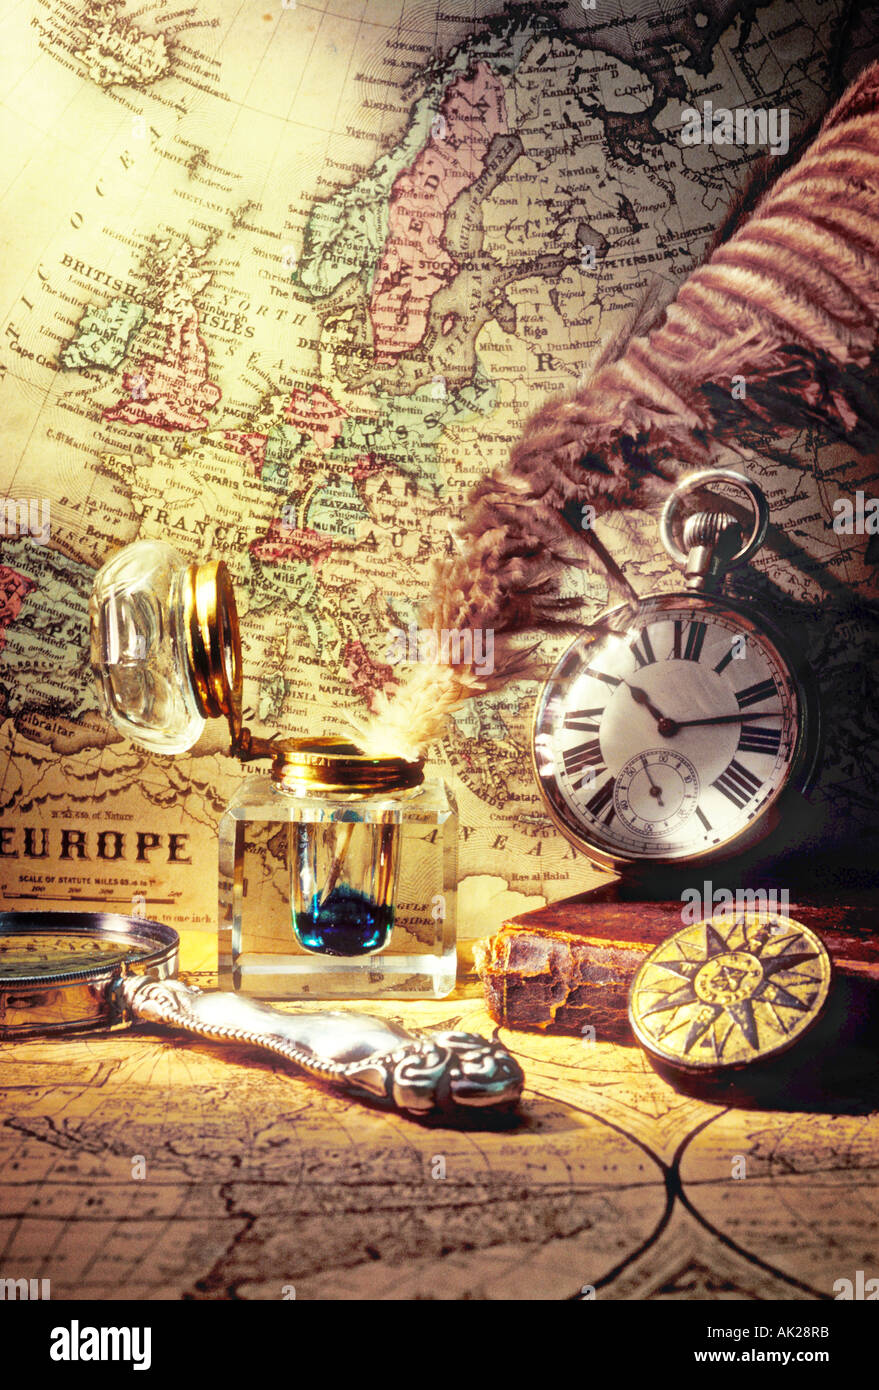 Old maps and ink well - Stock Image